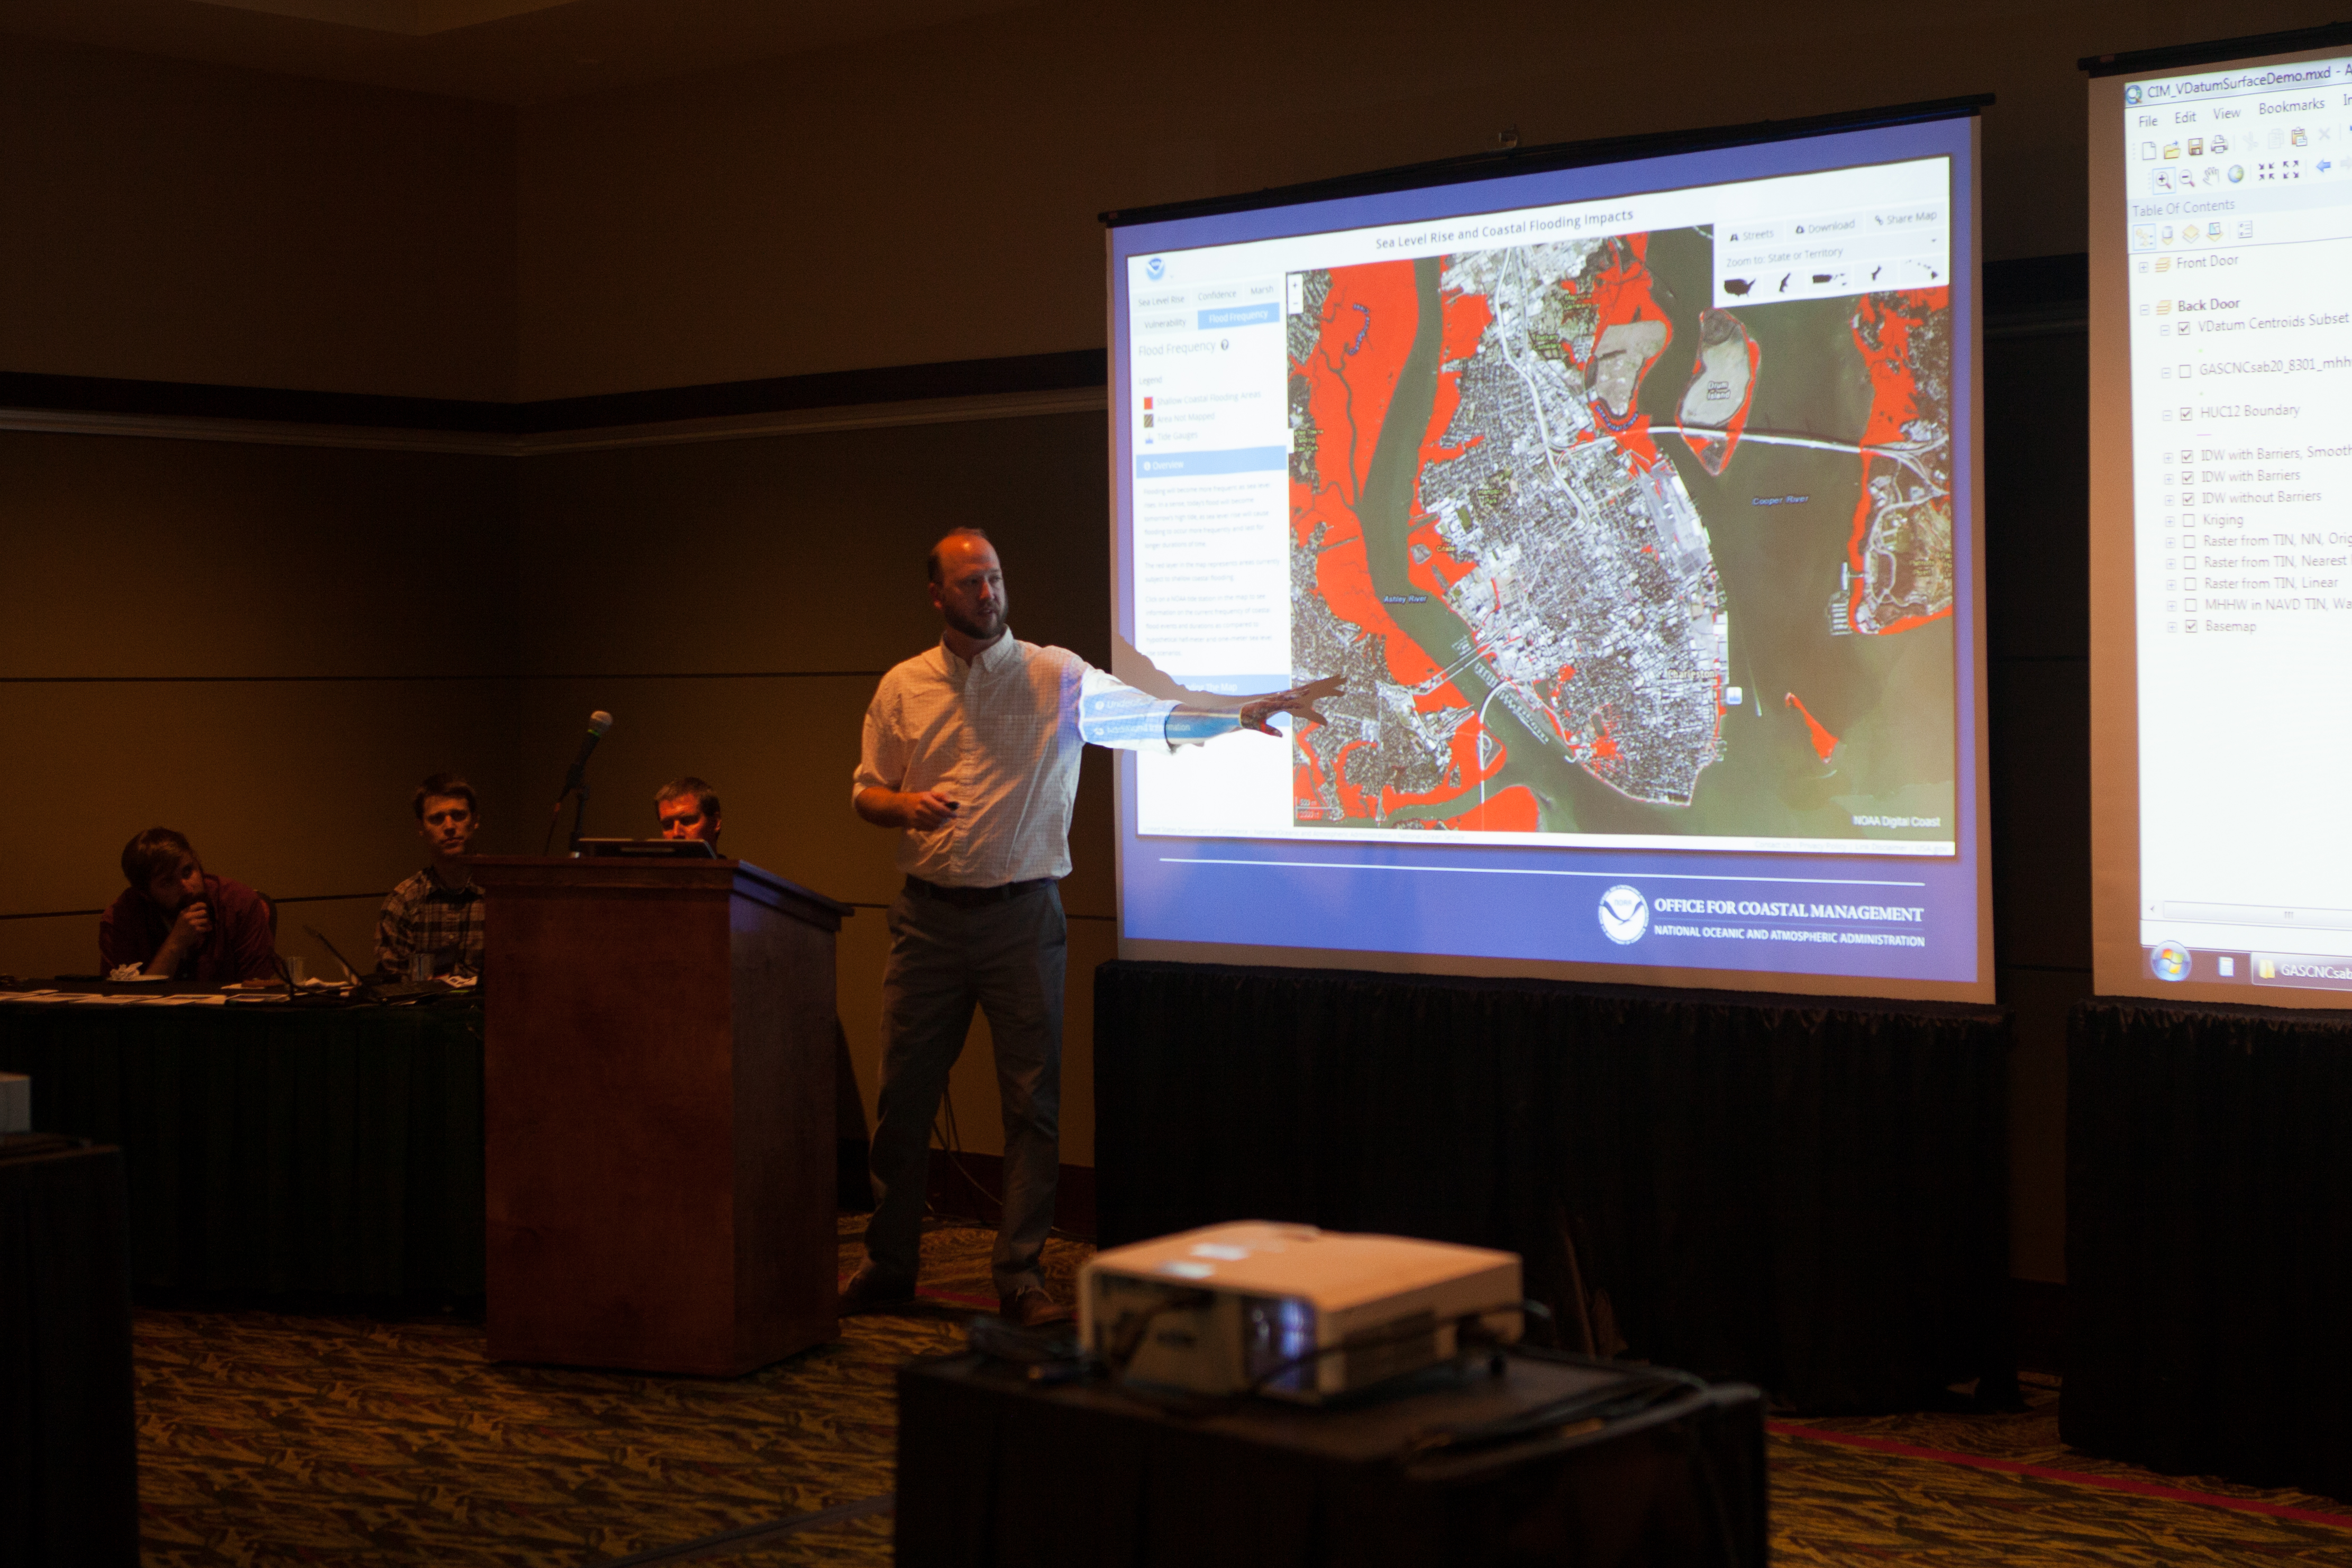 Submit Your Abstract for Coastal GeoTools 2017